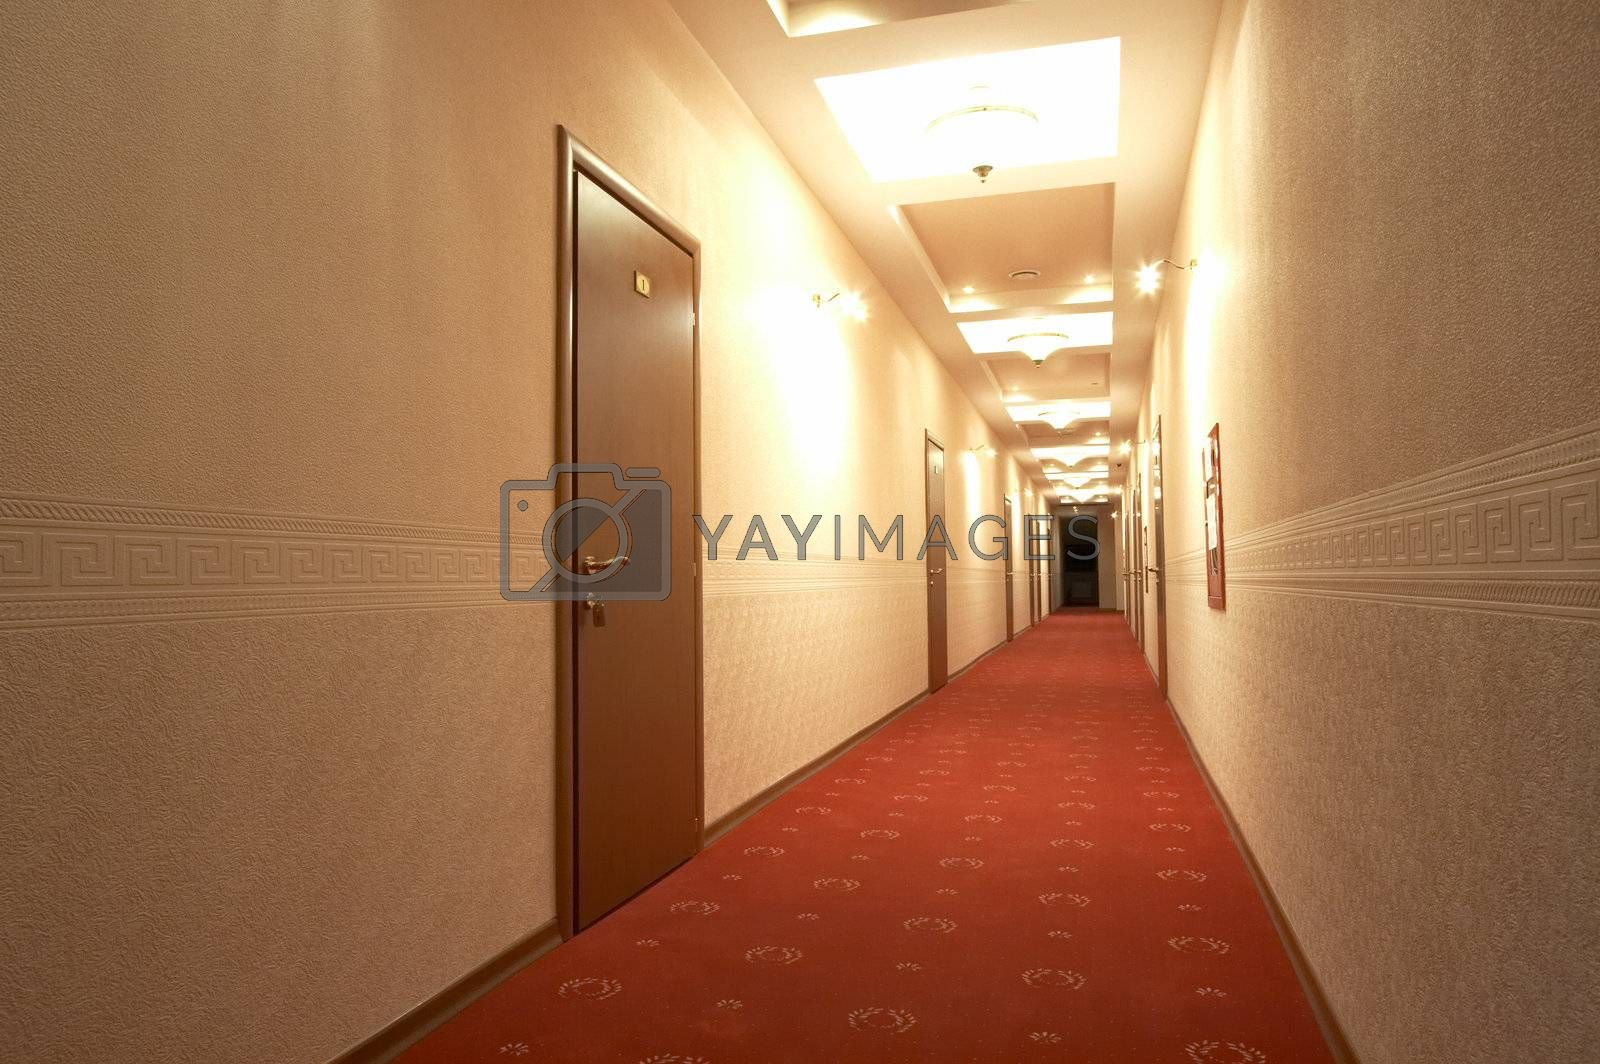 Corridor with a red carpet in hotel